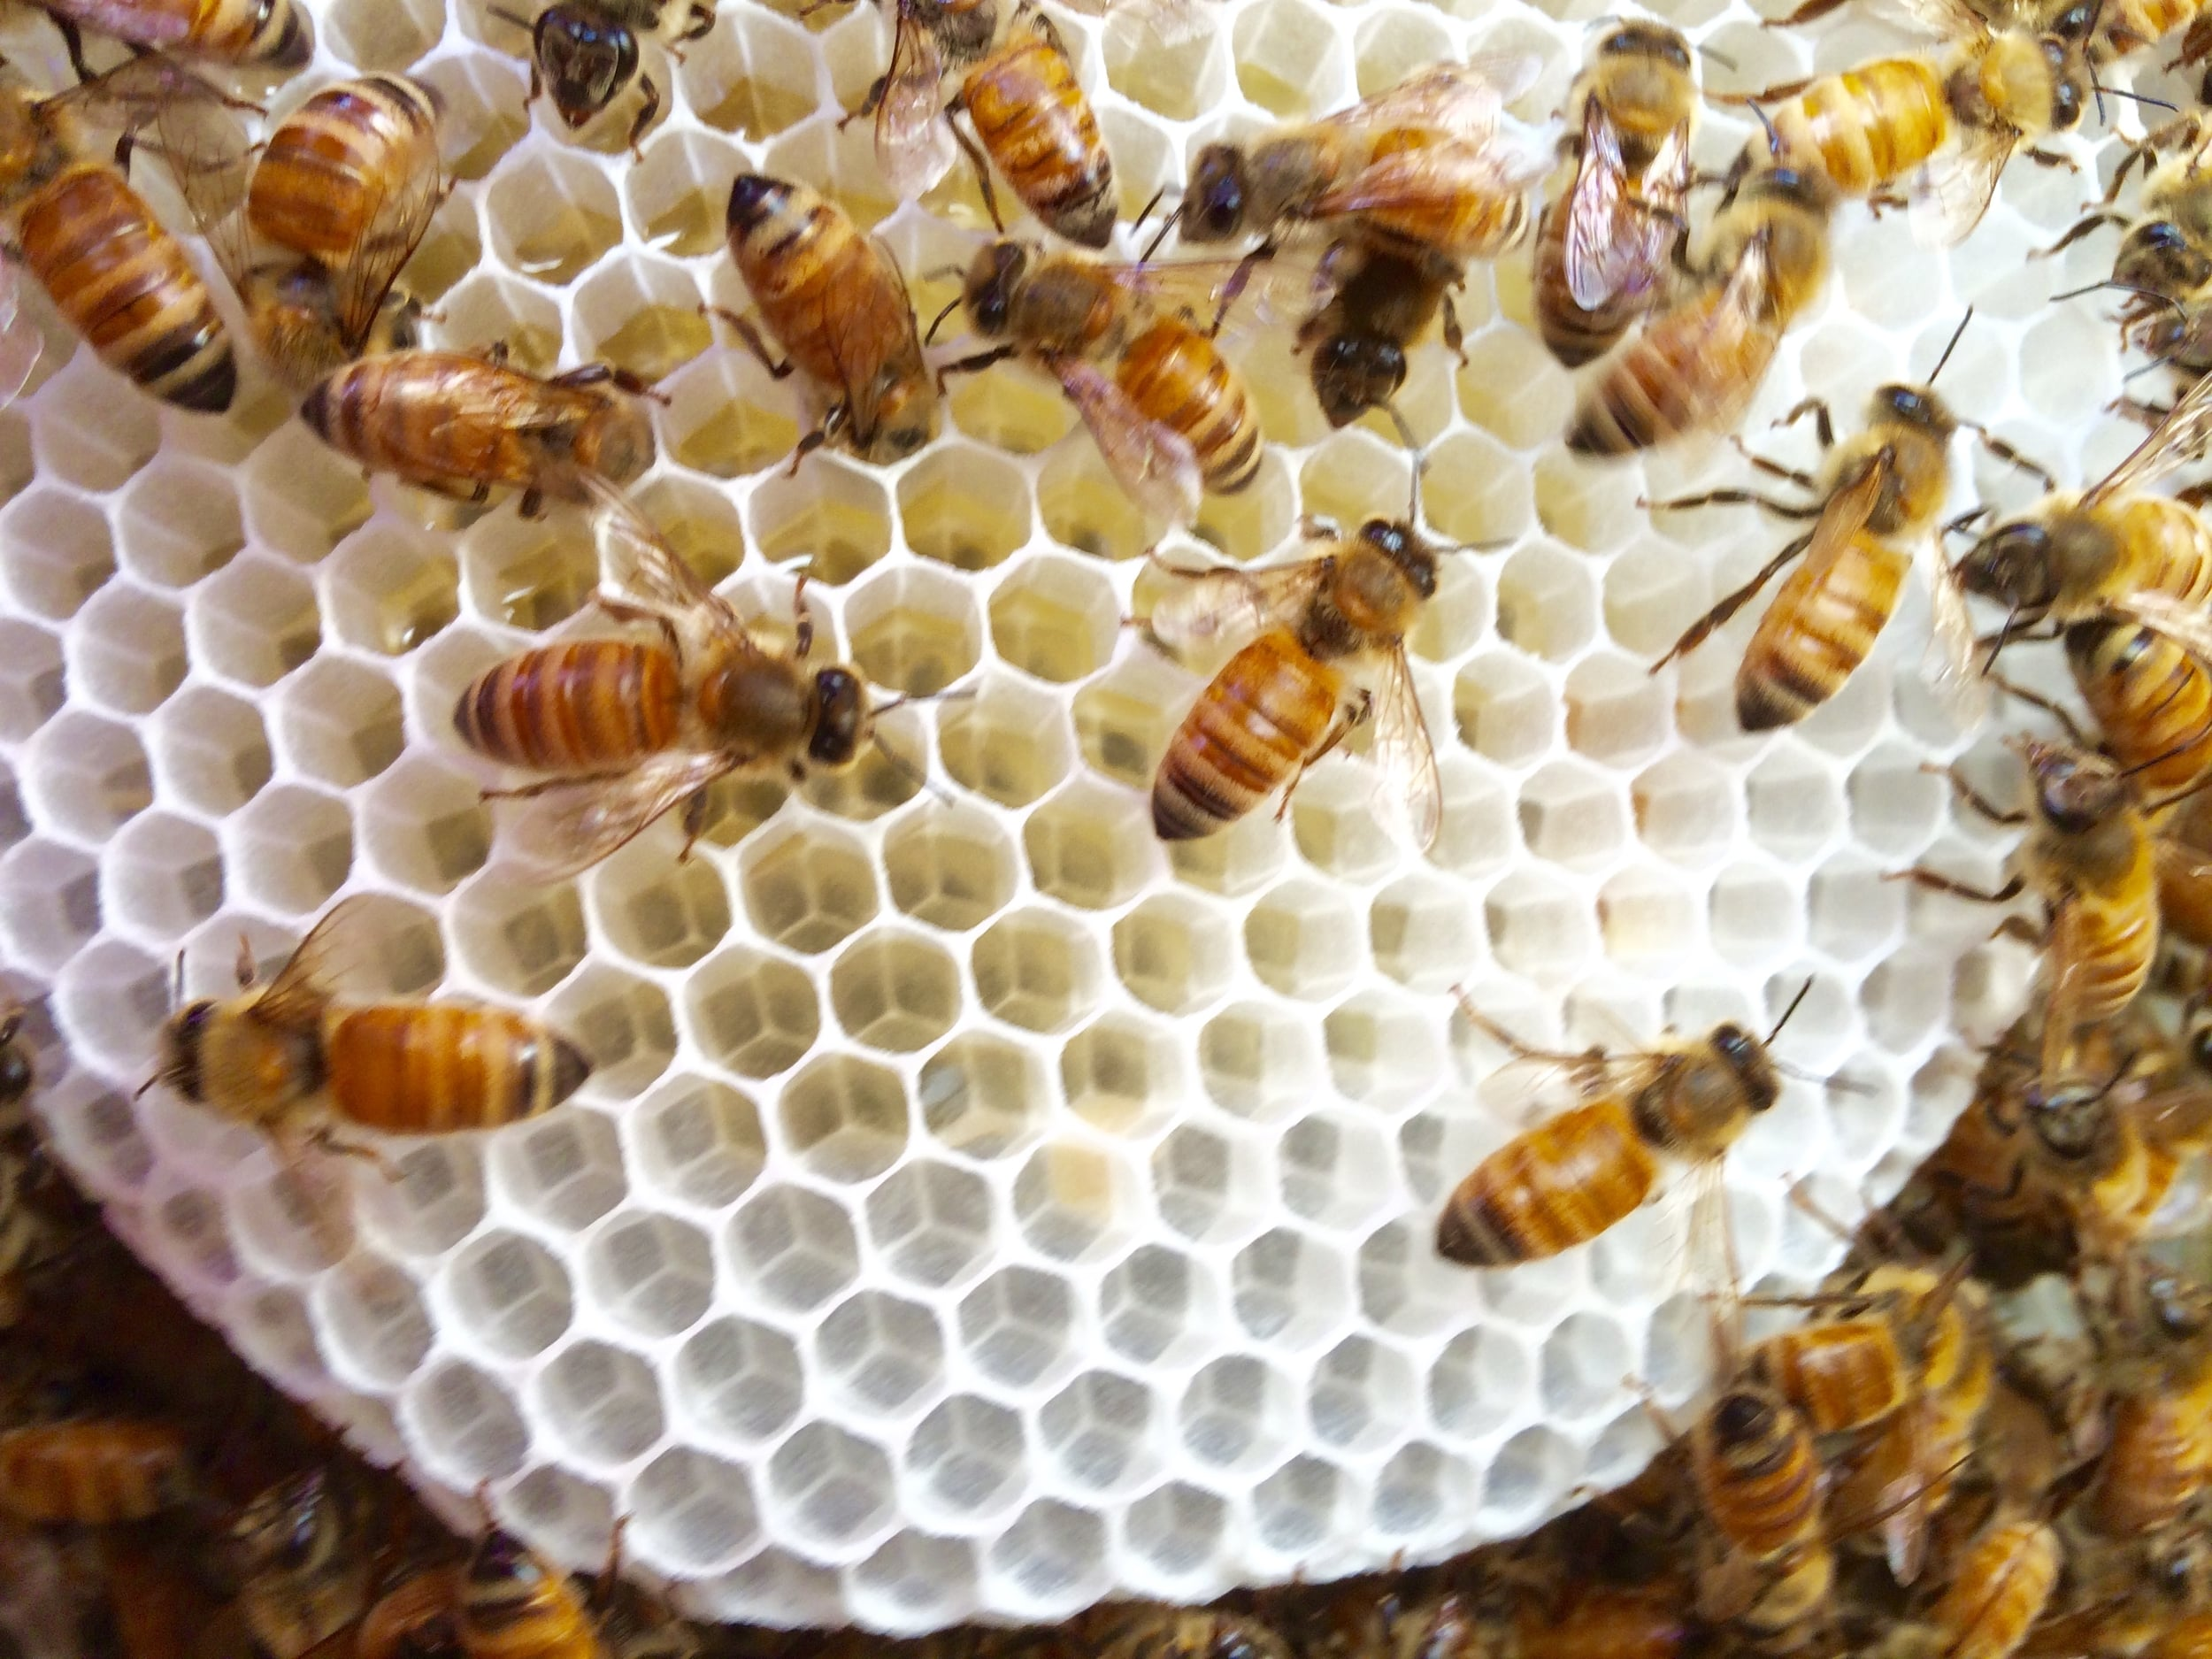 Busy Bees:Bees building comb and making honey.© Julie Gundlach